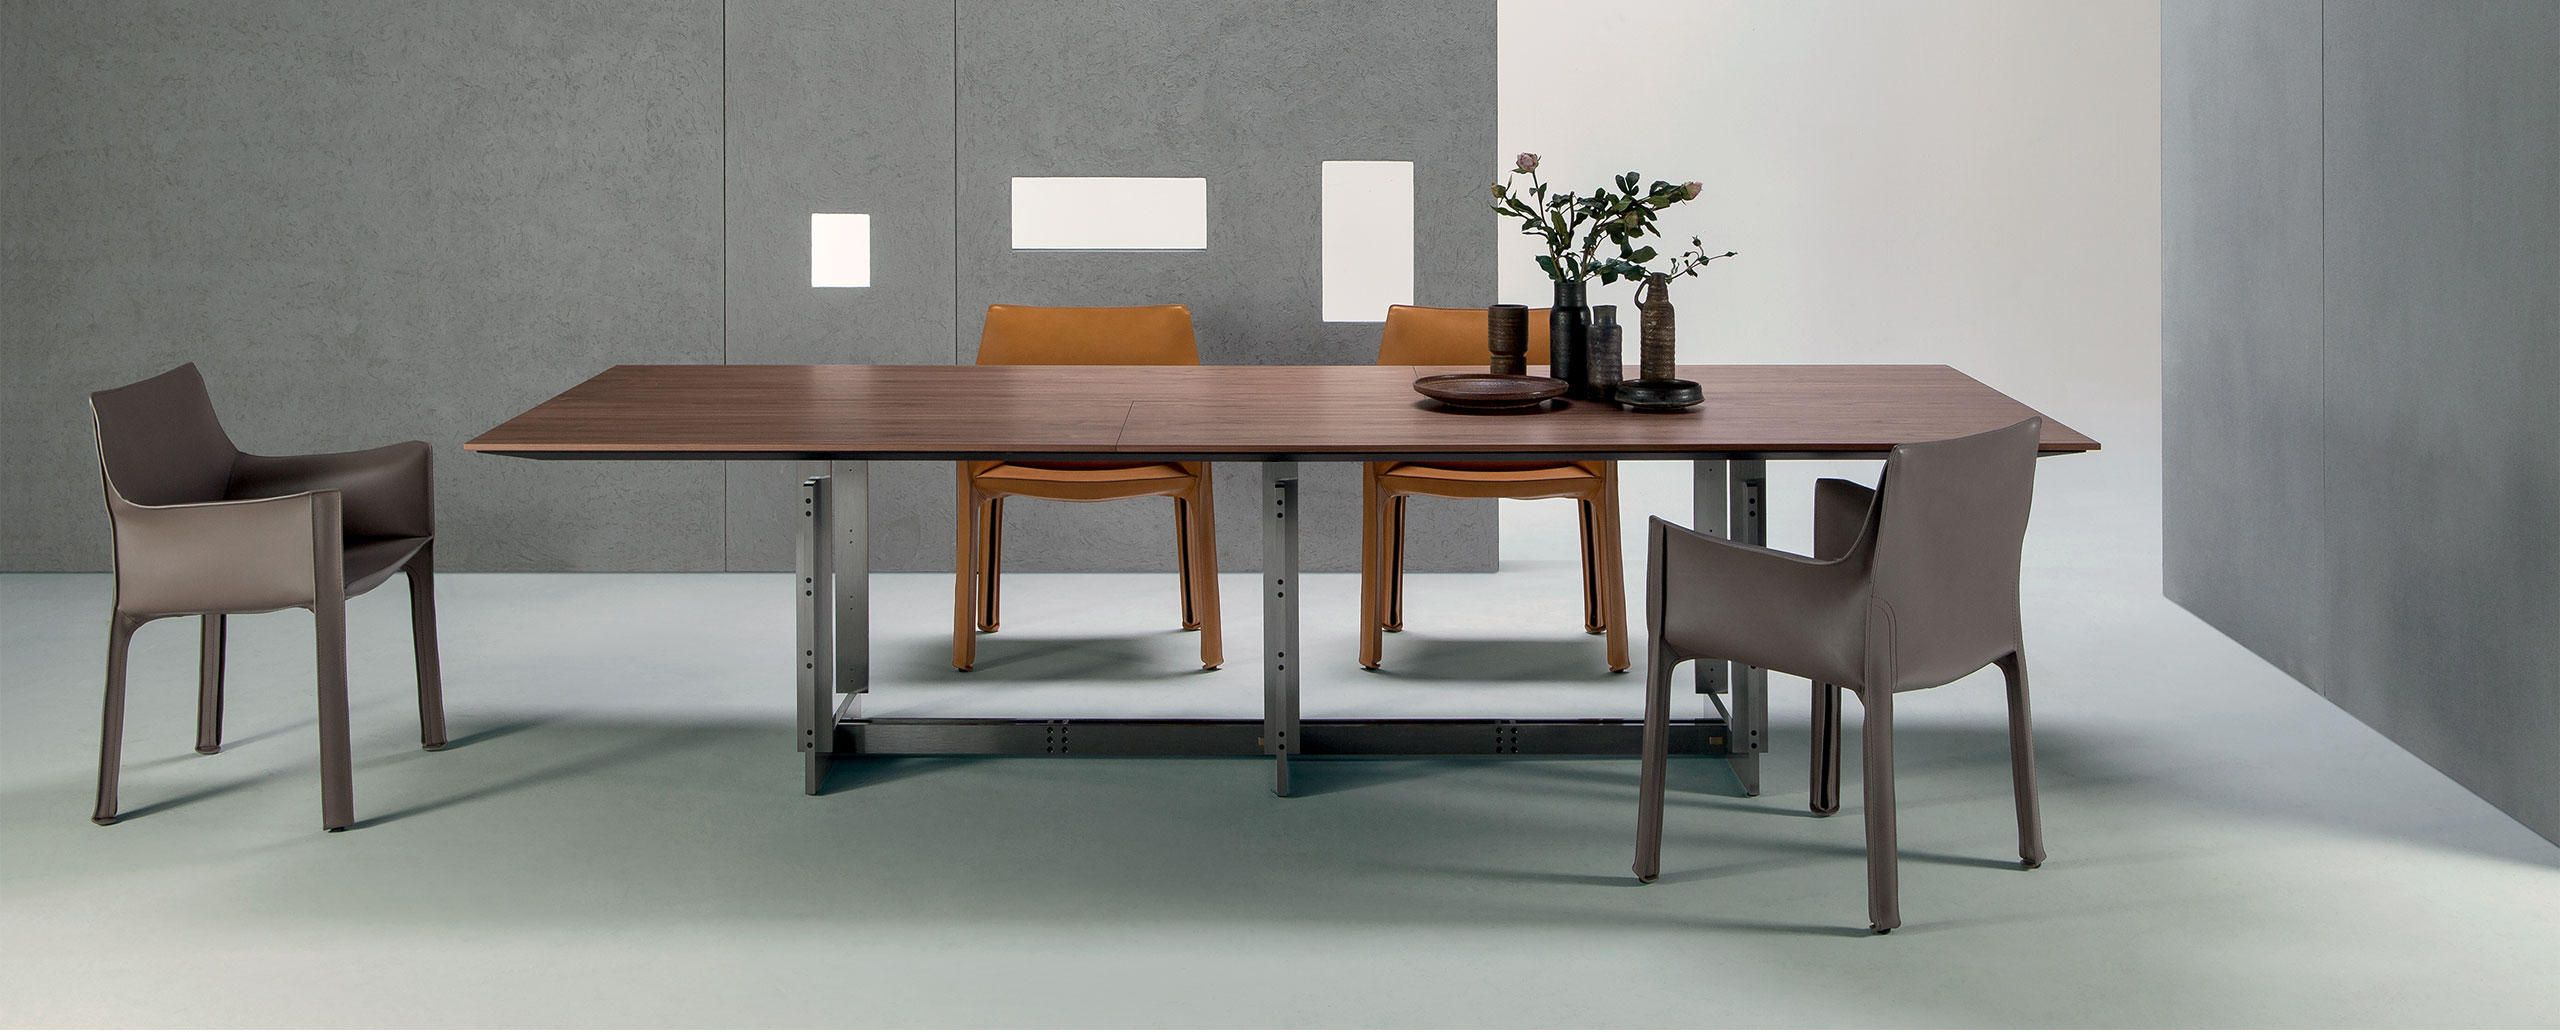 Cassina Sarpi Office Dining Table Office Table Table Furniture